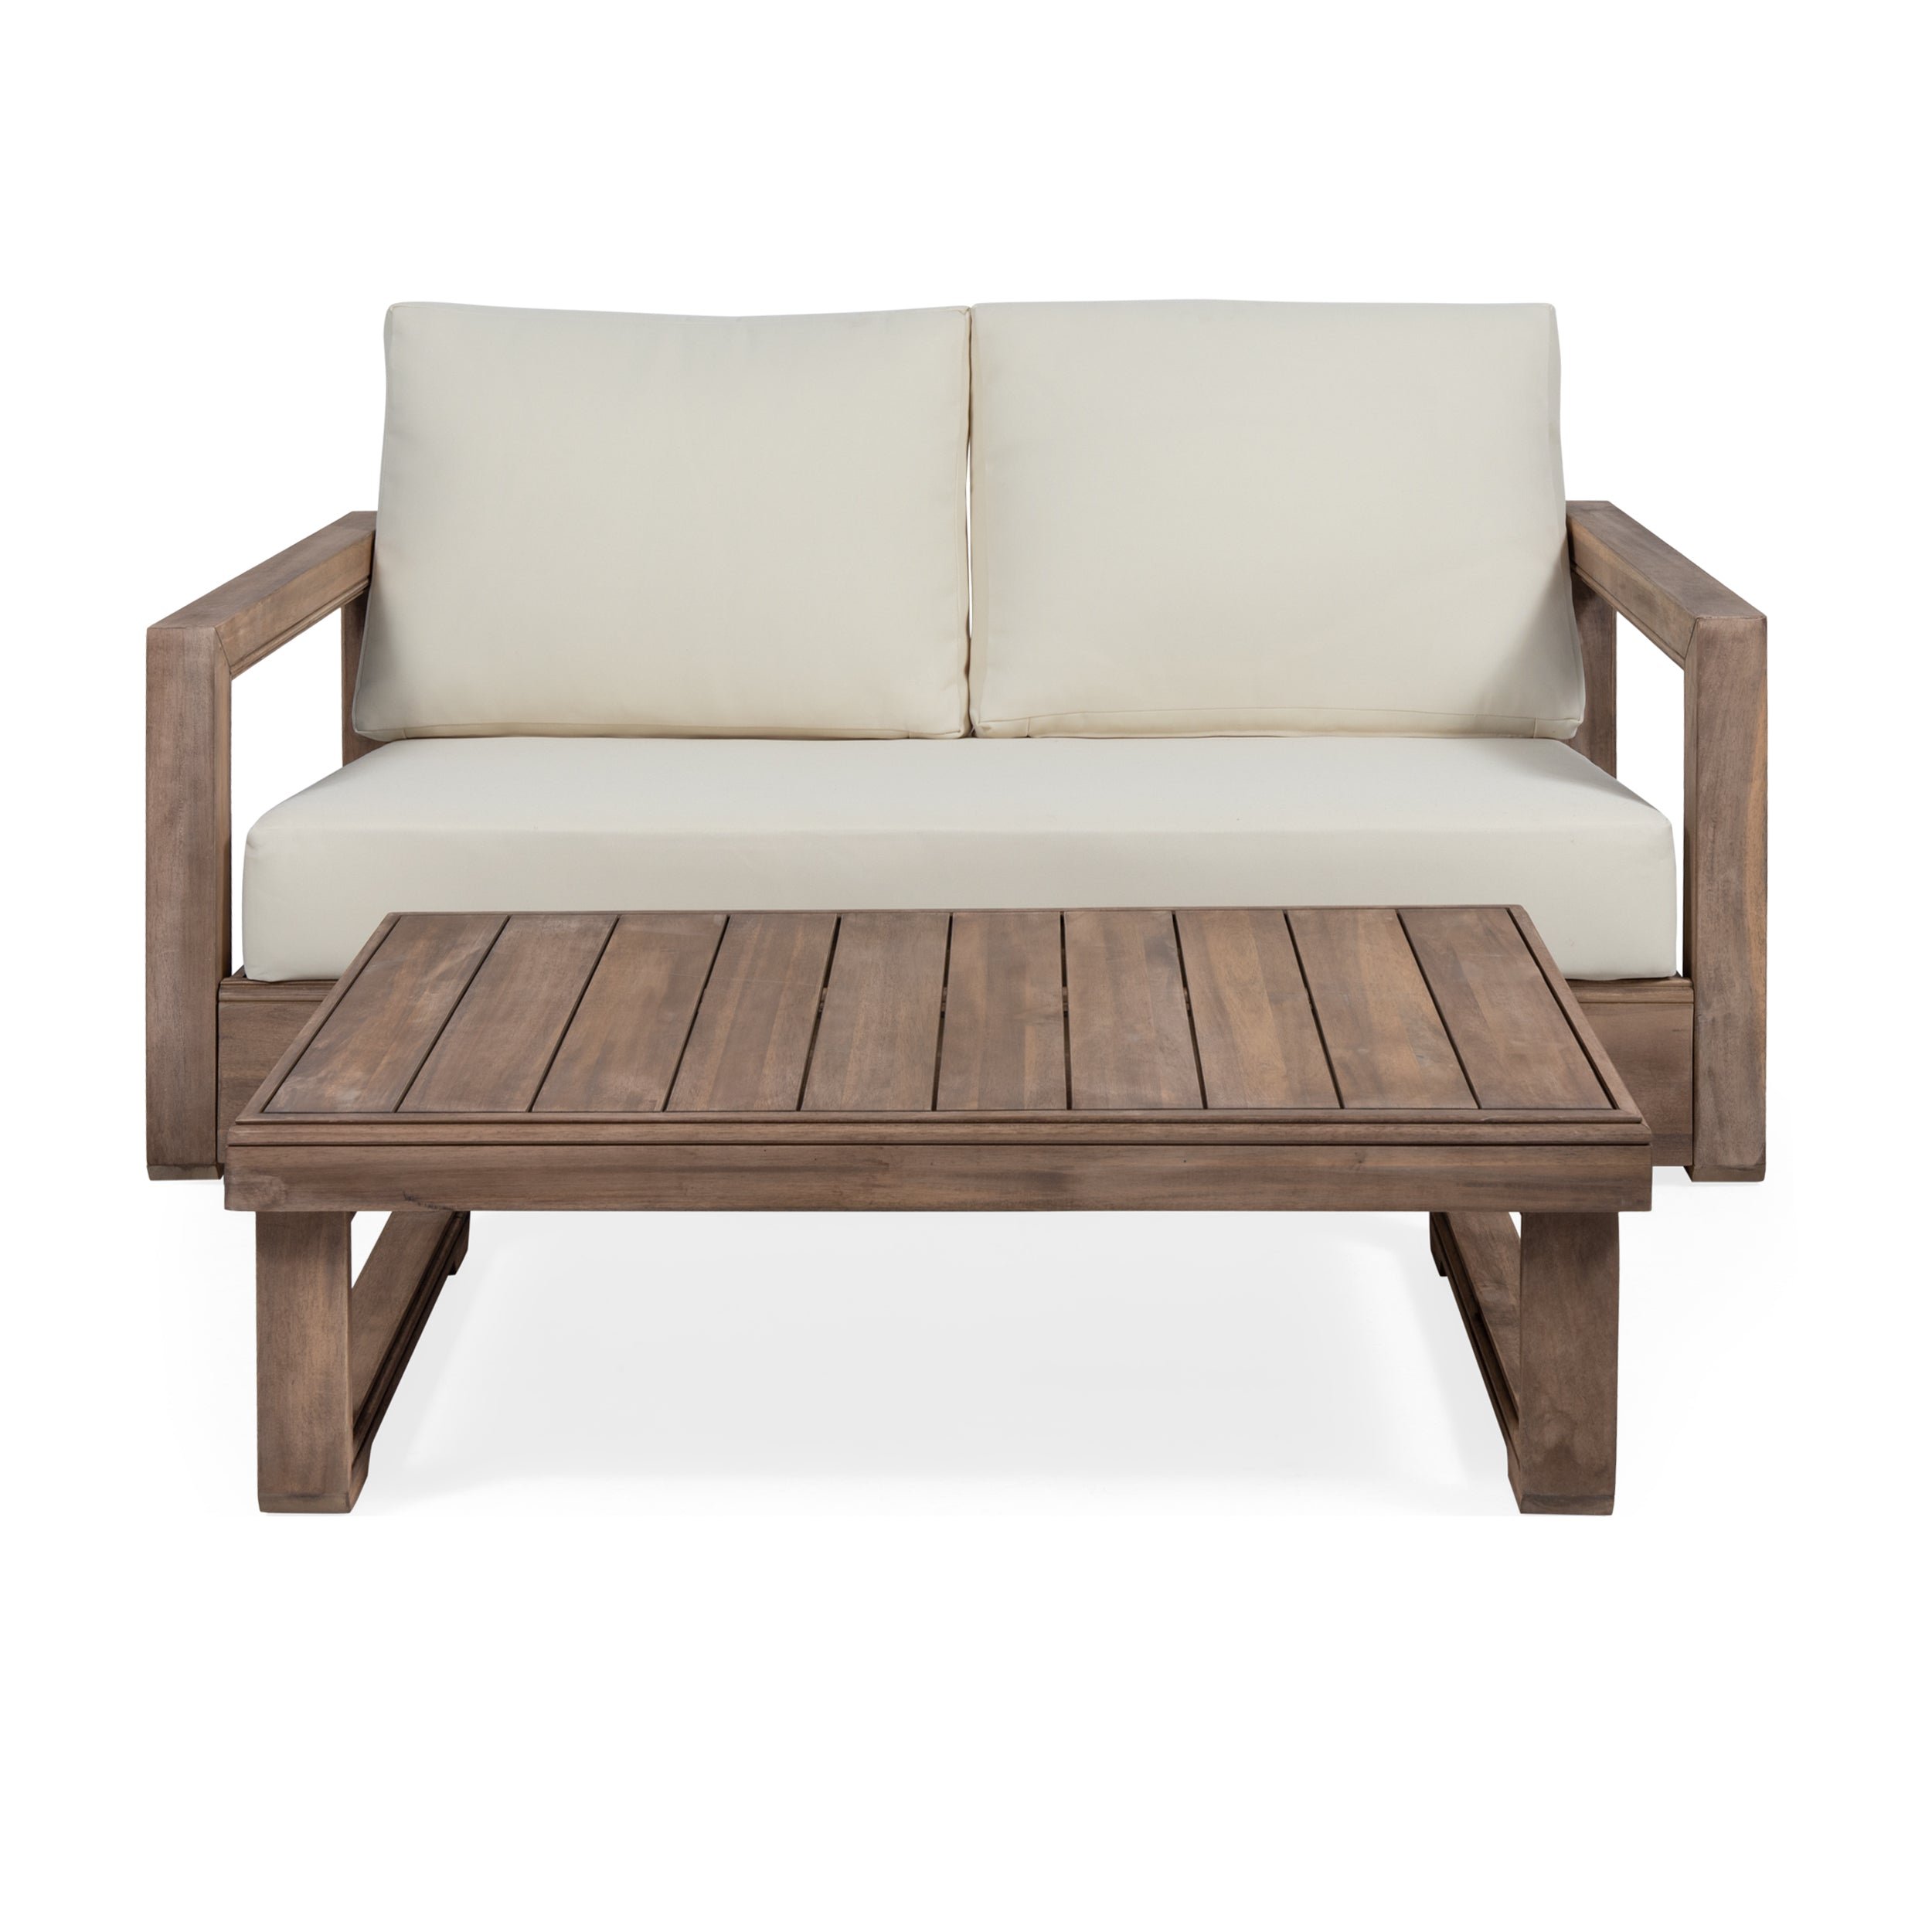 Andrae Outdoor Acacia Wood Loveseat Set with Coffee Table